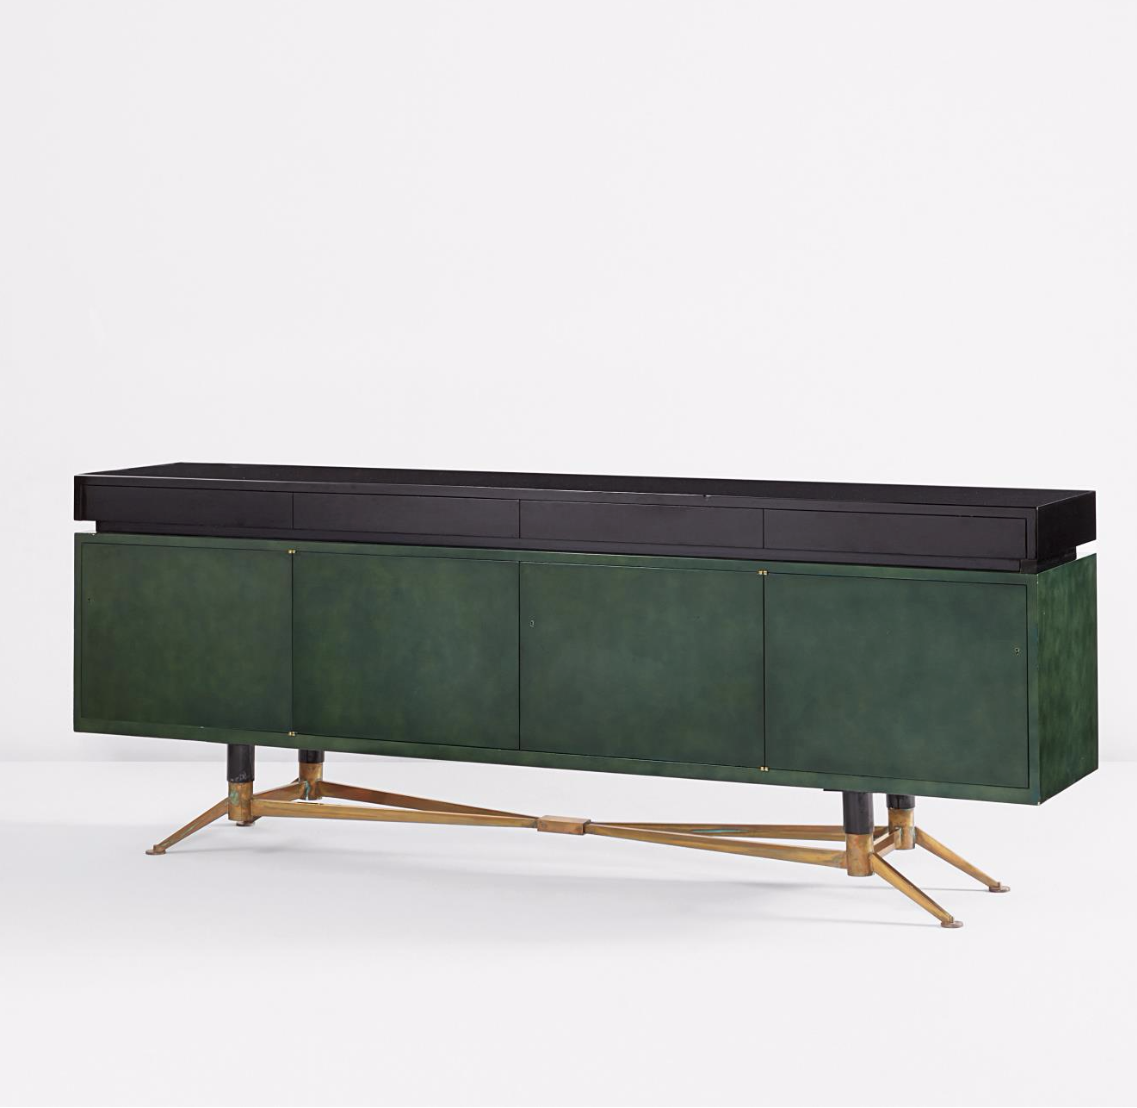 lacquered wood, bronze and steel sideboard | wohndesign, Wohnzimmer